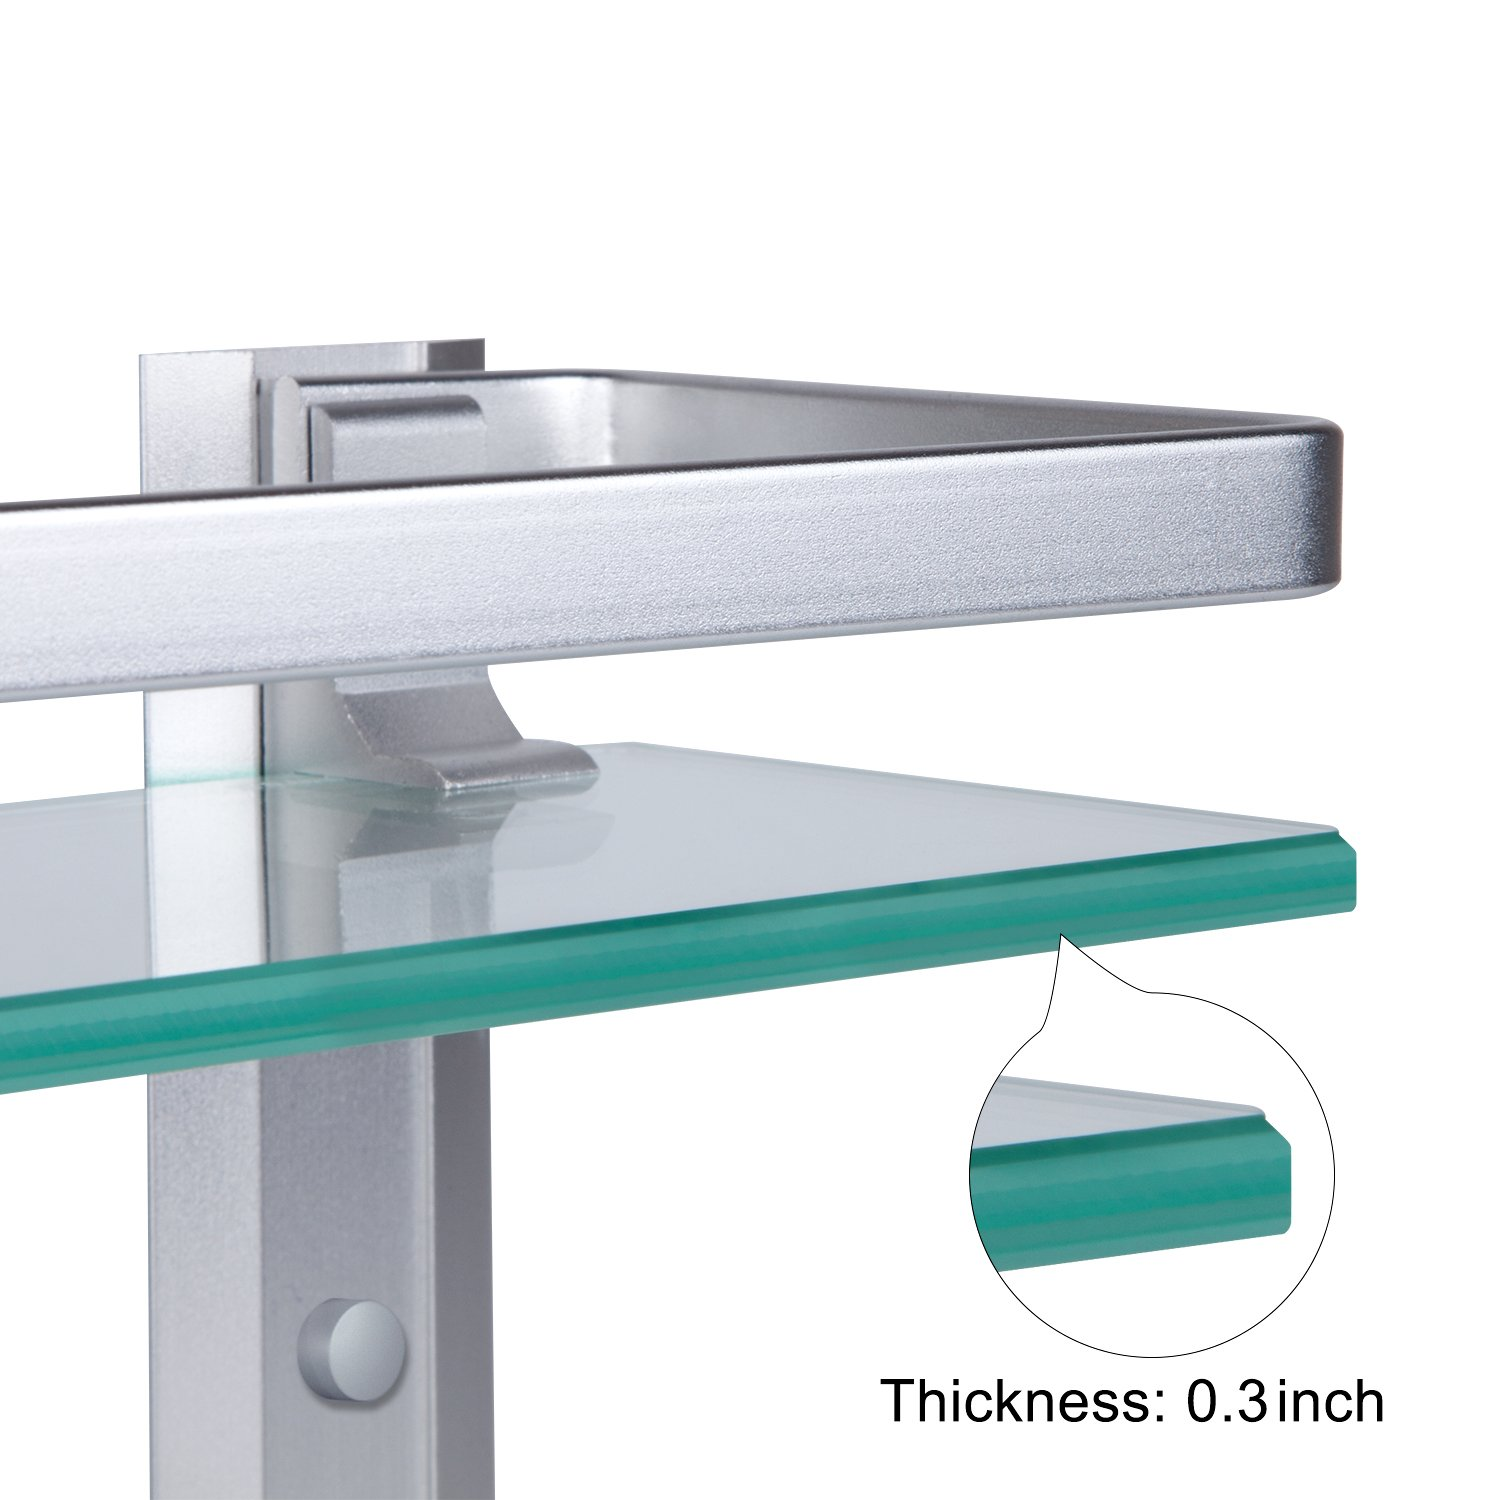 VDOMUS Tempered Glass Bathroom Shelf With Towel Bar wall mounted ...